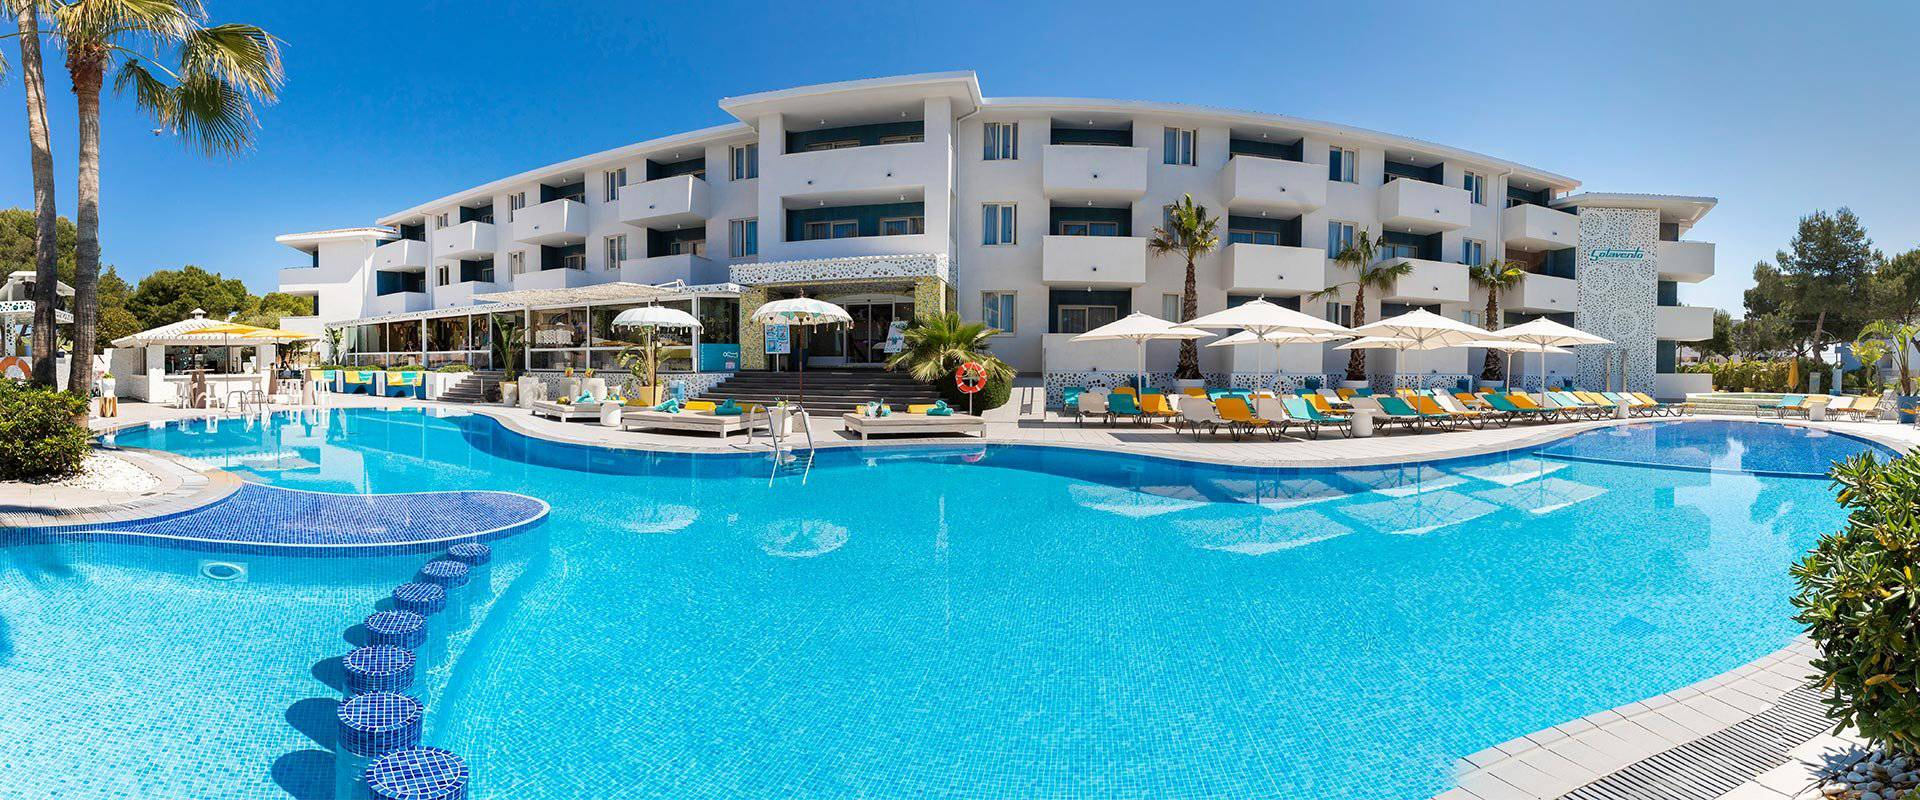 The true meaning of an exceptional vacation in magaluf hotel sotavento club apartments